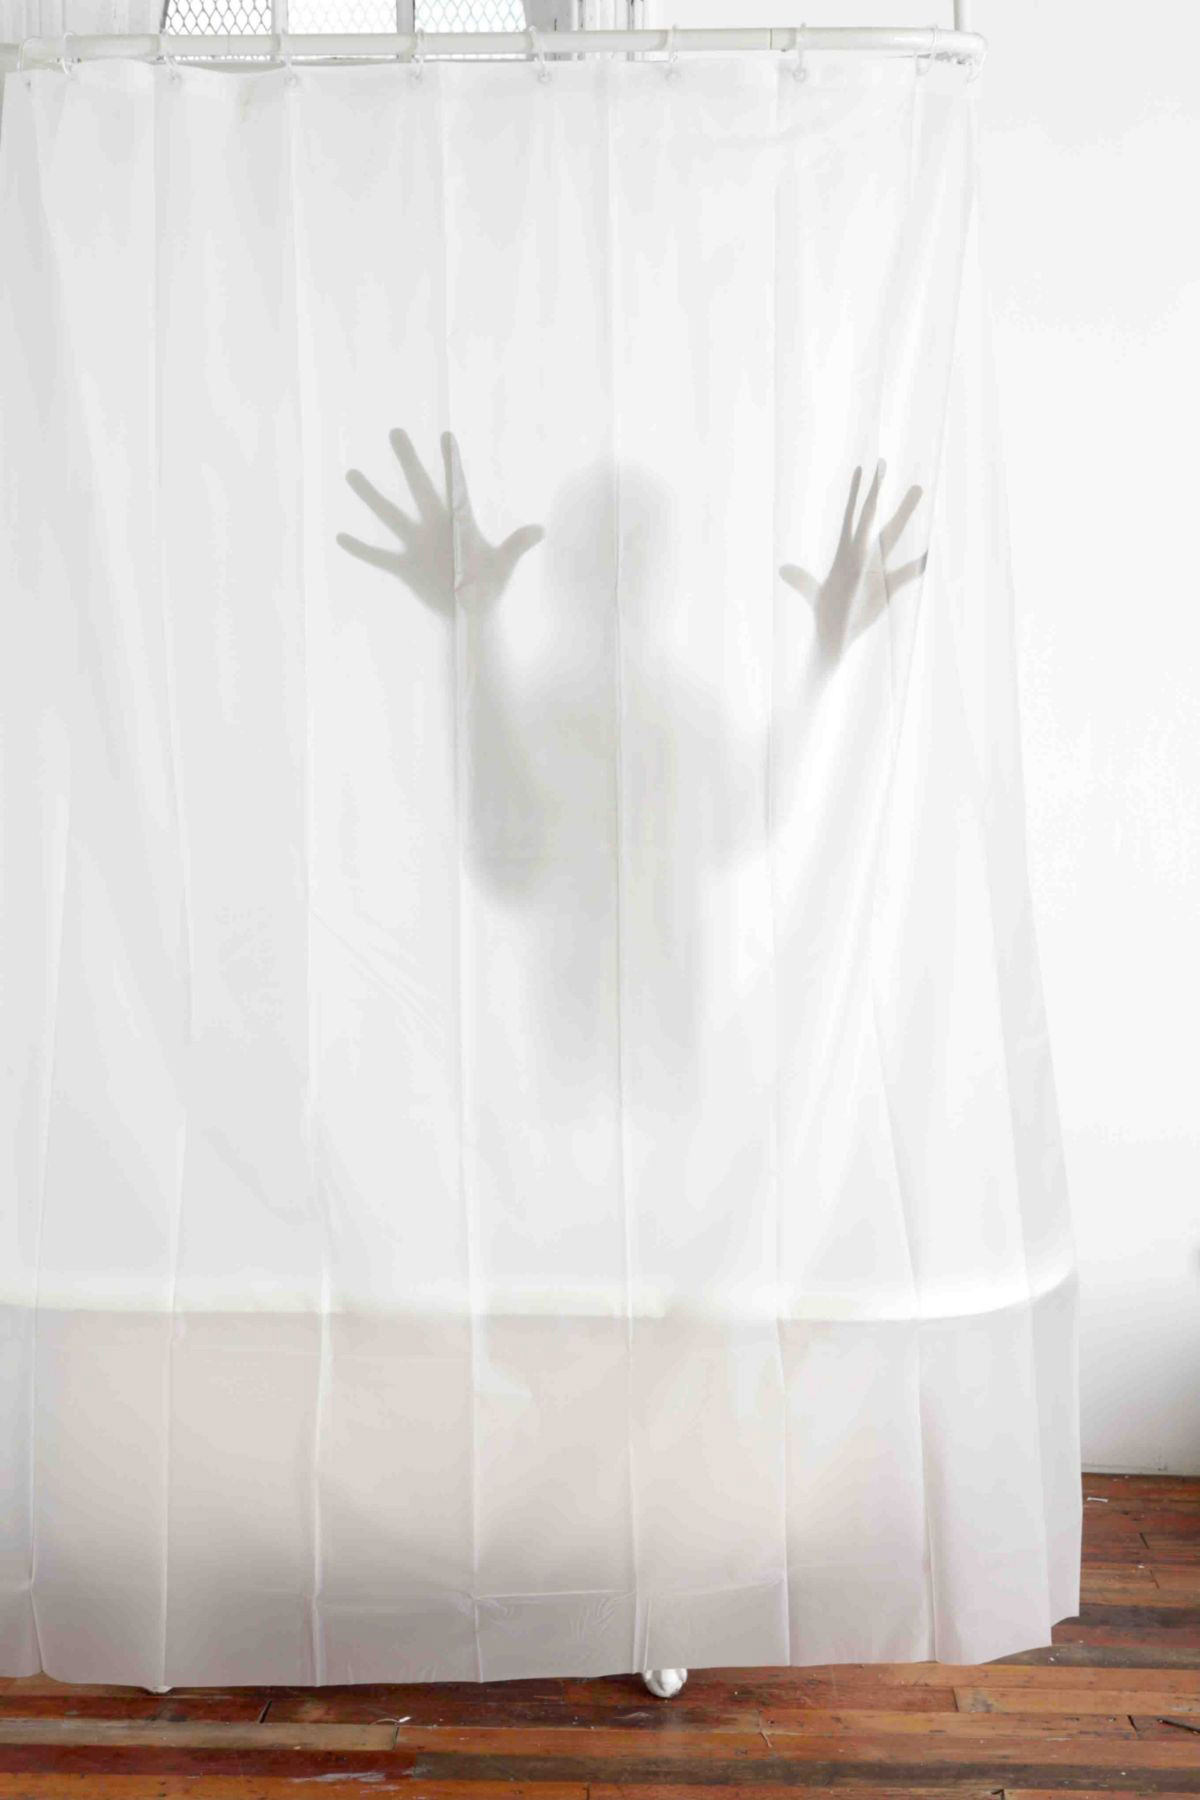 Scary Shower Curtain - The Green Head